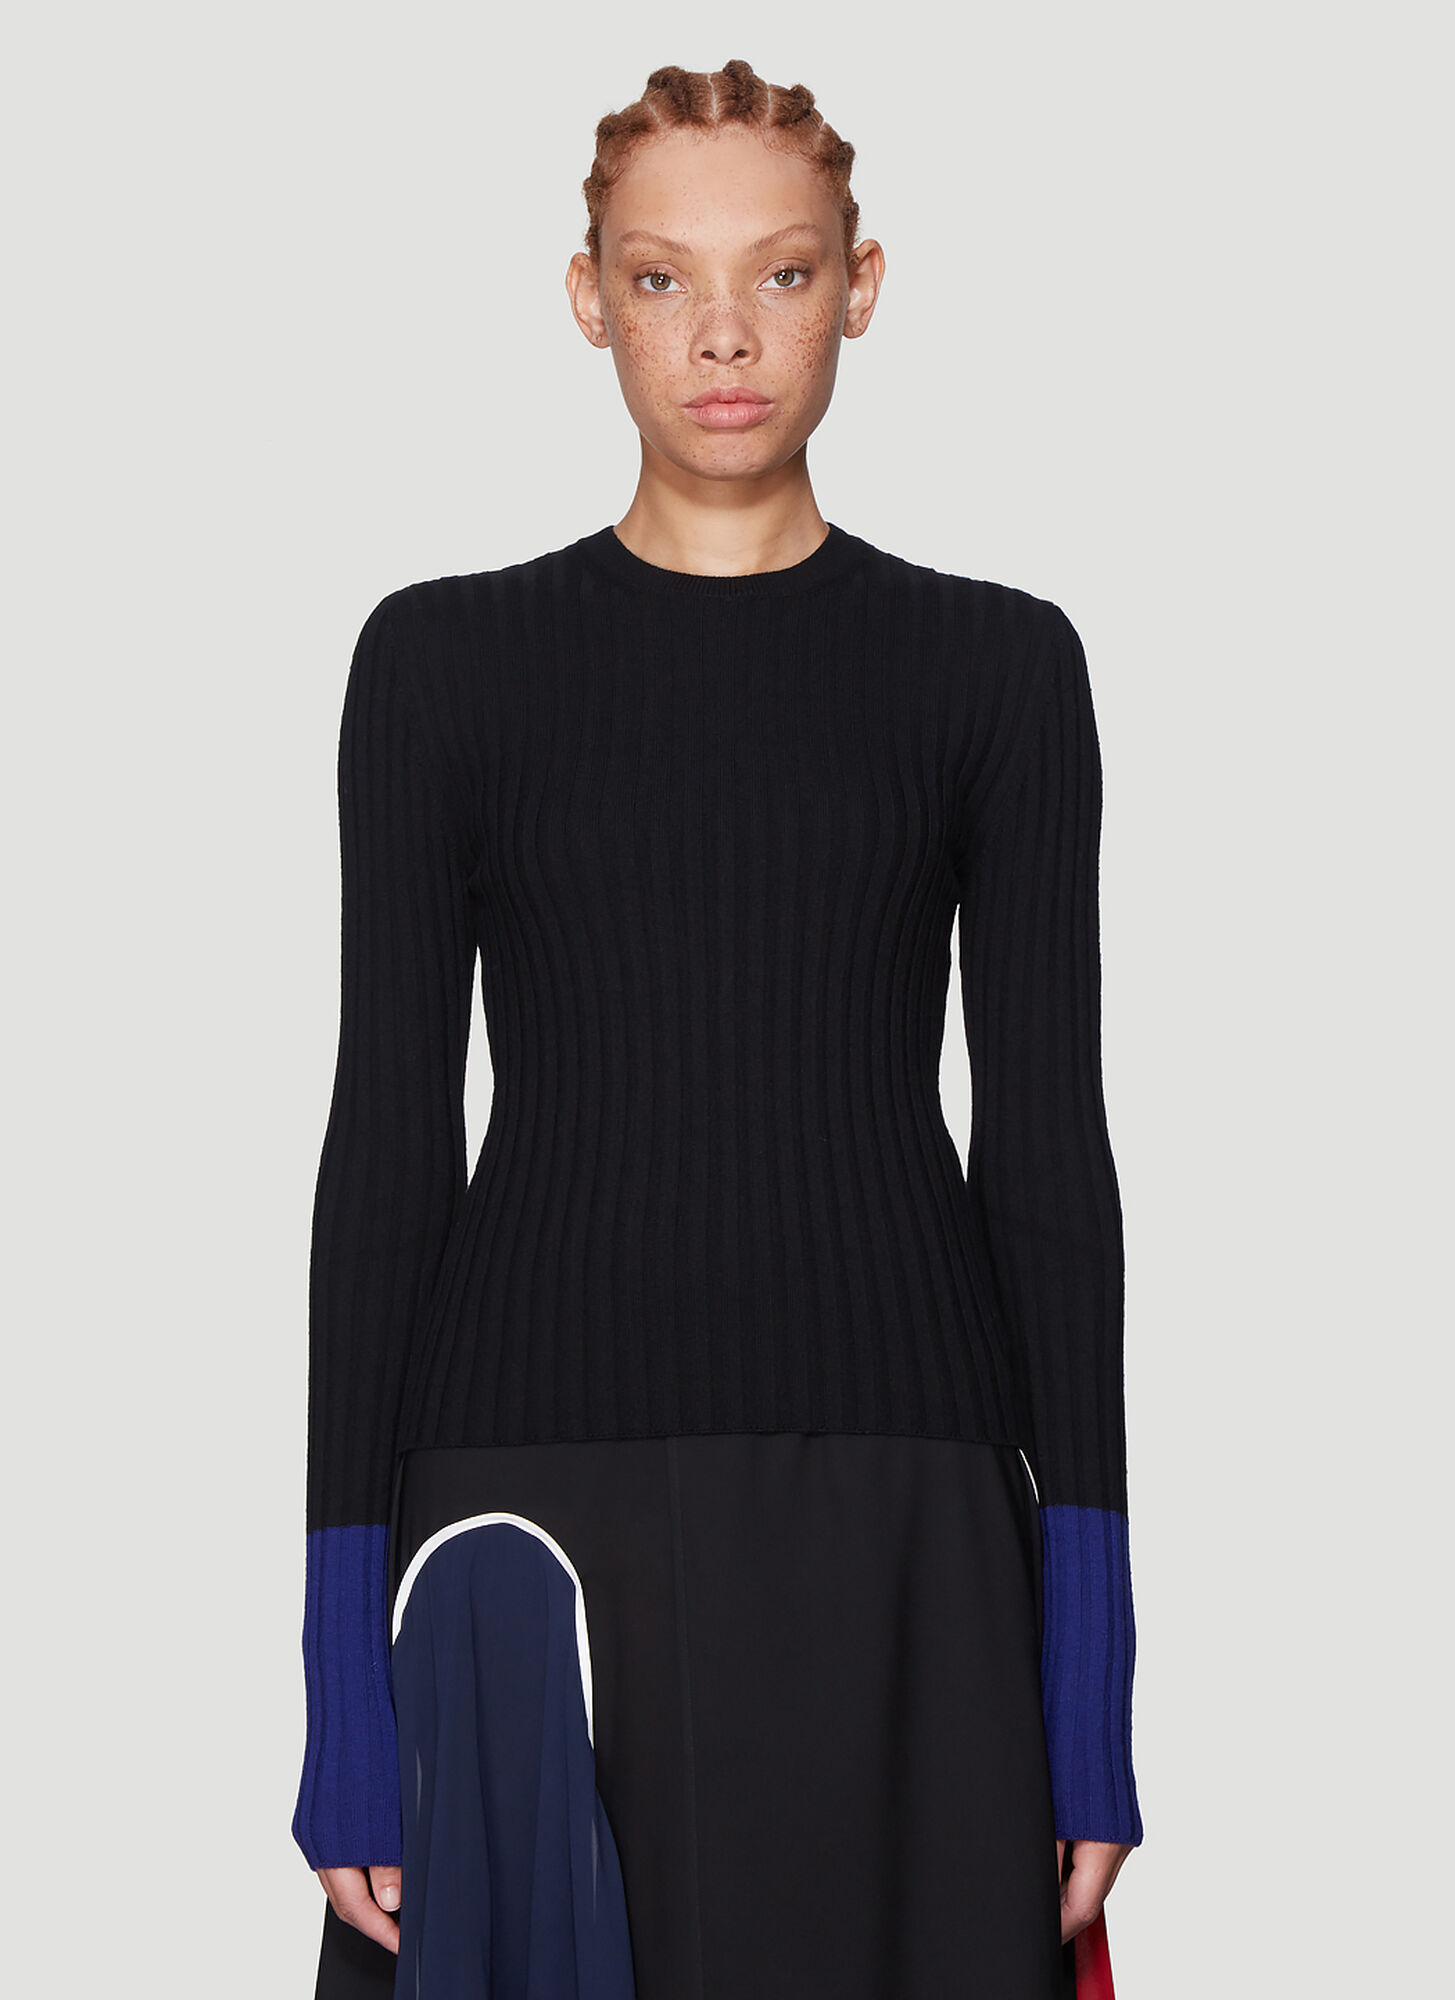 JW Anderson Ribbed Knit Sweater in Black